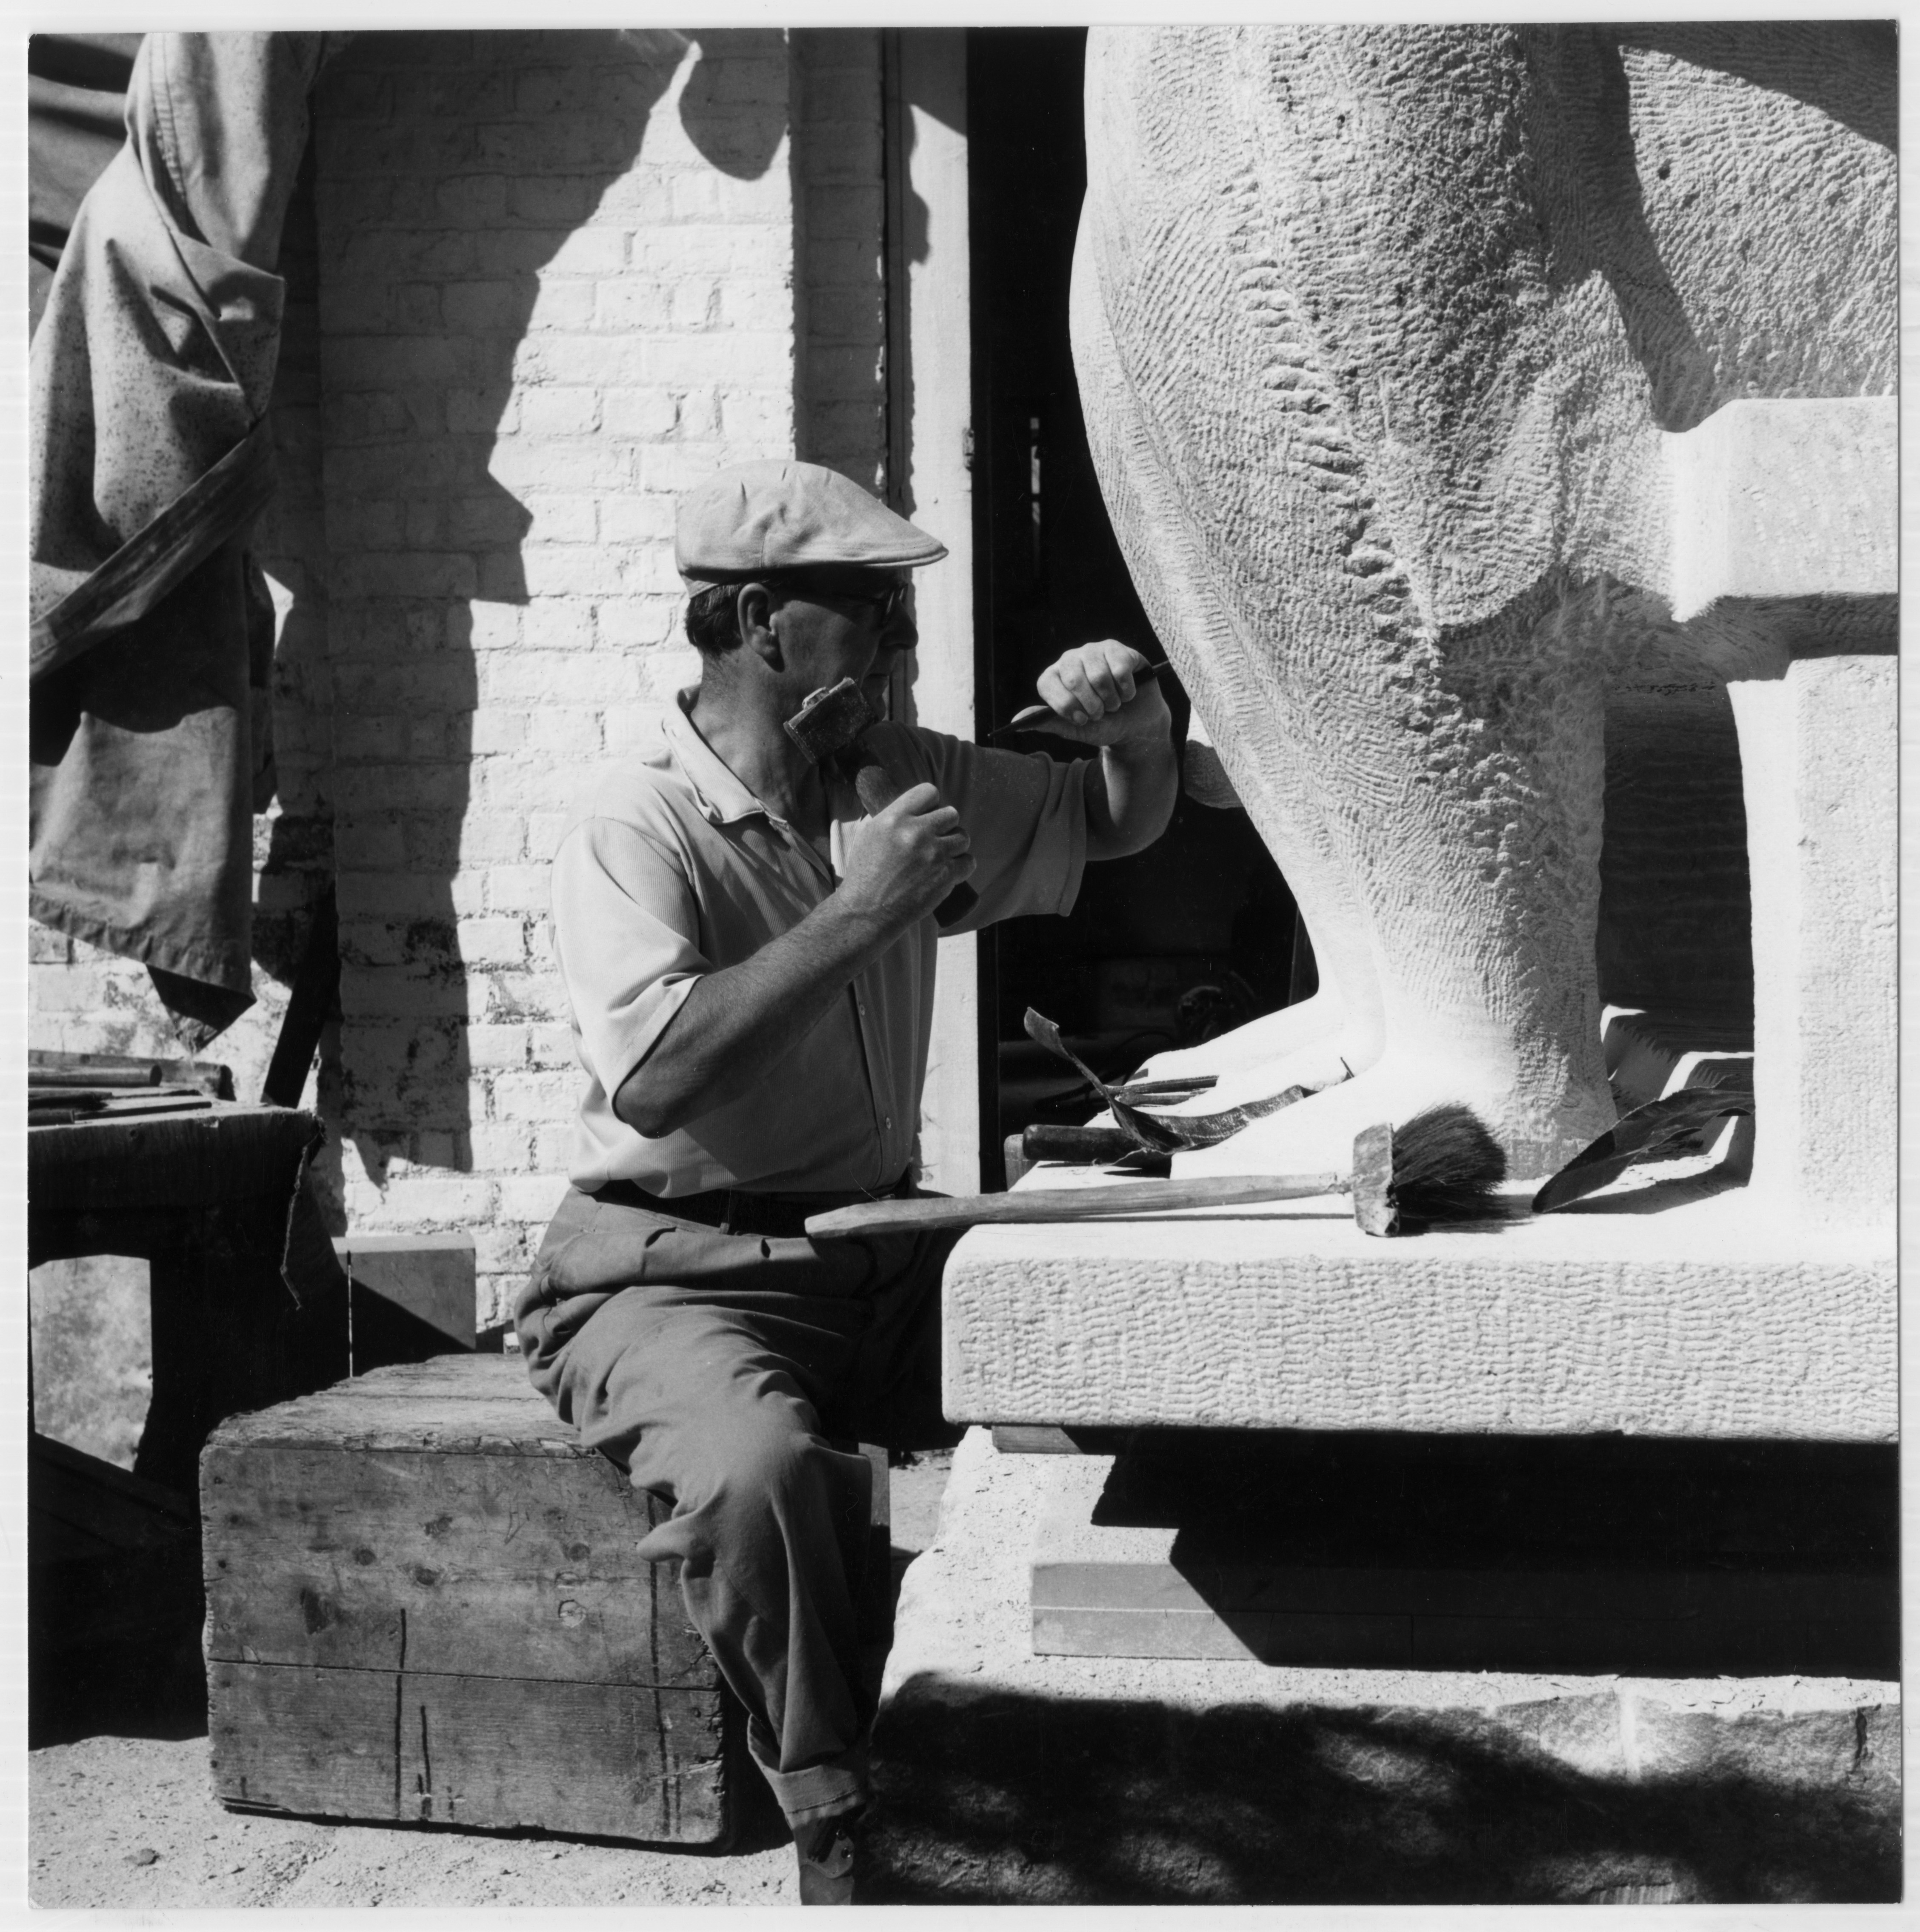 Henry Moore carving the Harlow Family Group sculpture, 1955